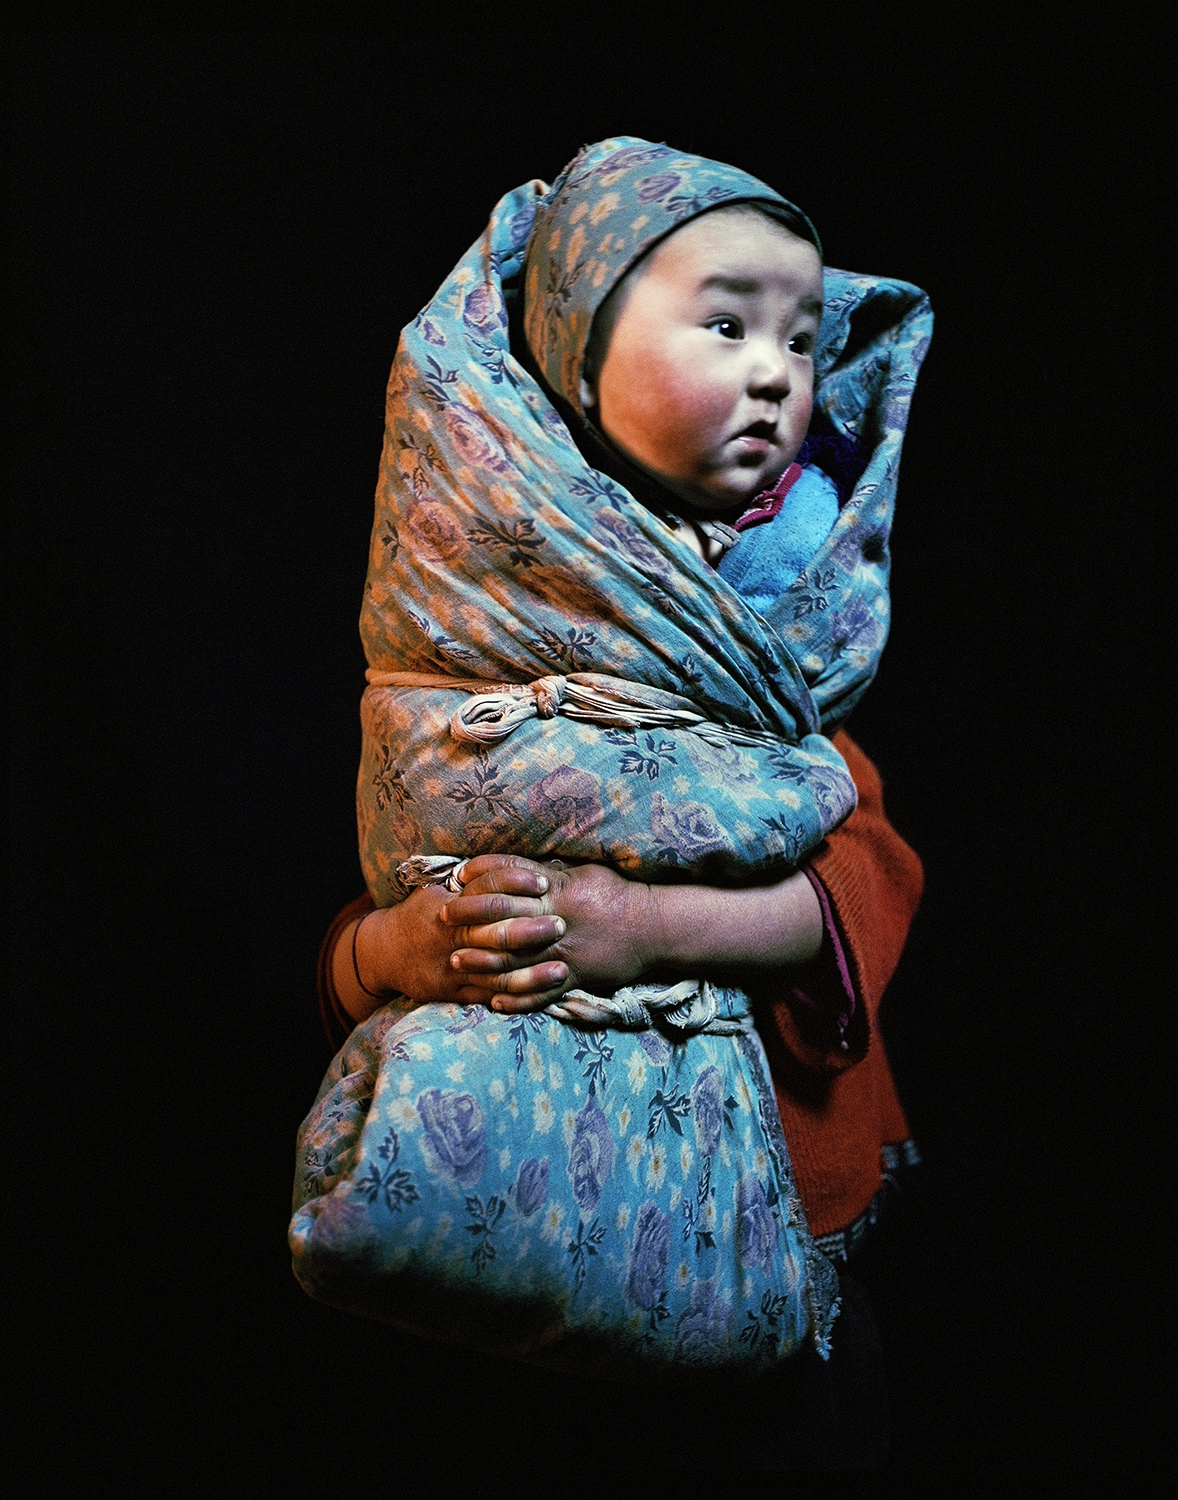 Photo of Mongolia by Frederic Lagrange